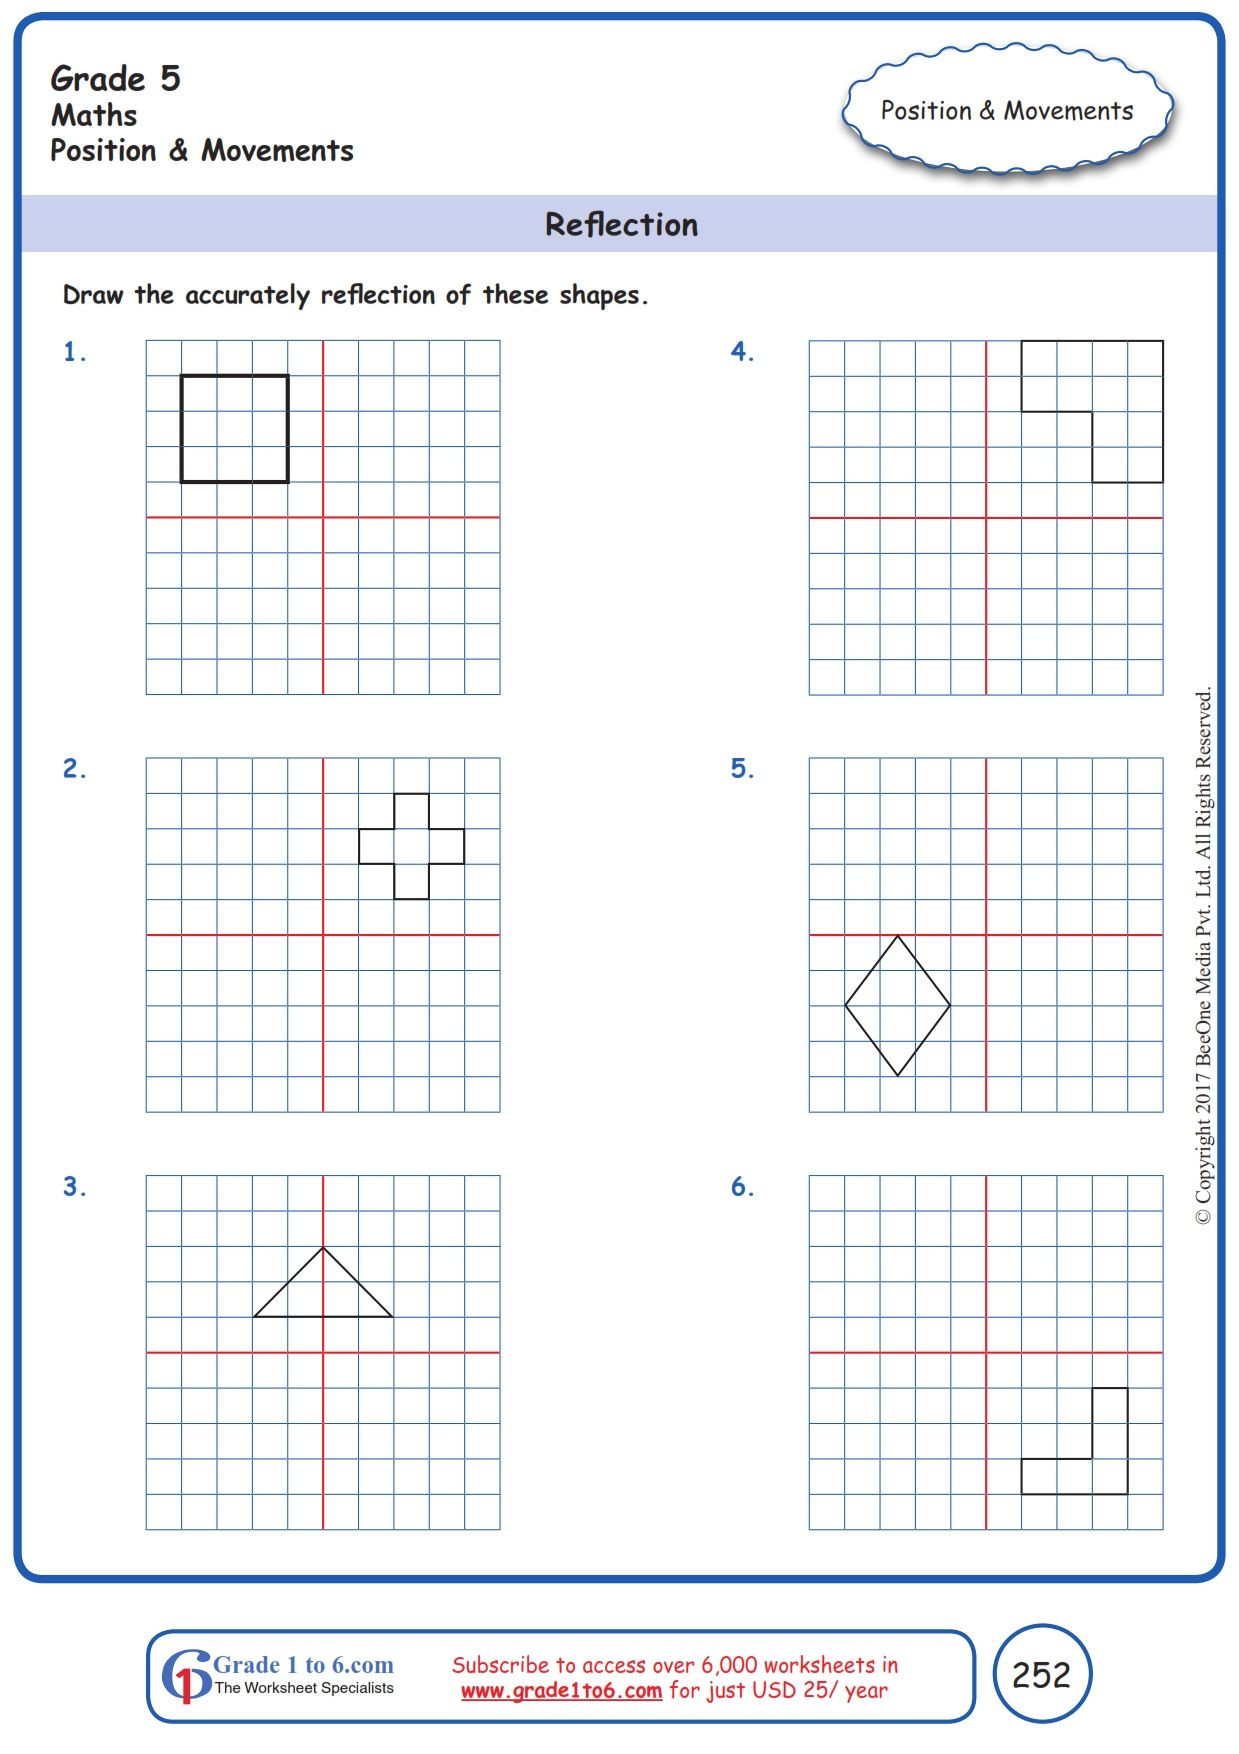 Reflection Math Worksheets Free Math Worksheets for Grade 1 Through Grade 6 Subscribe